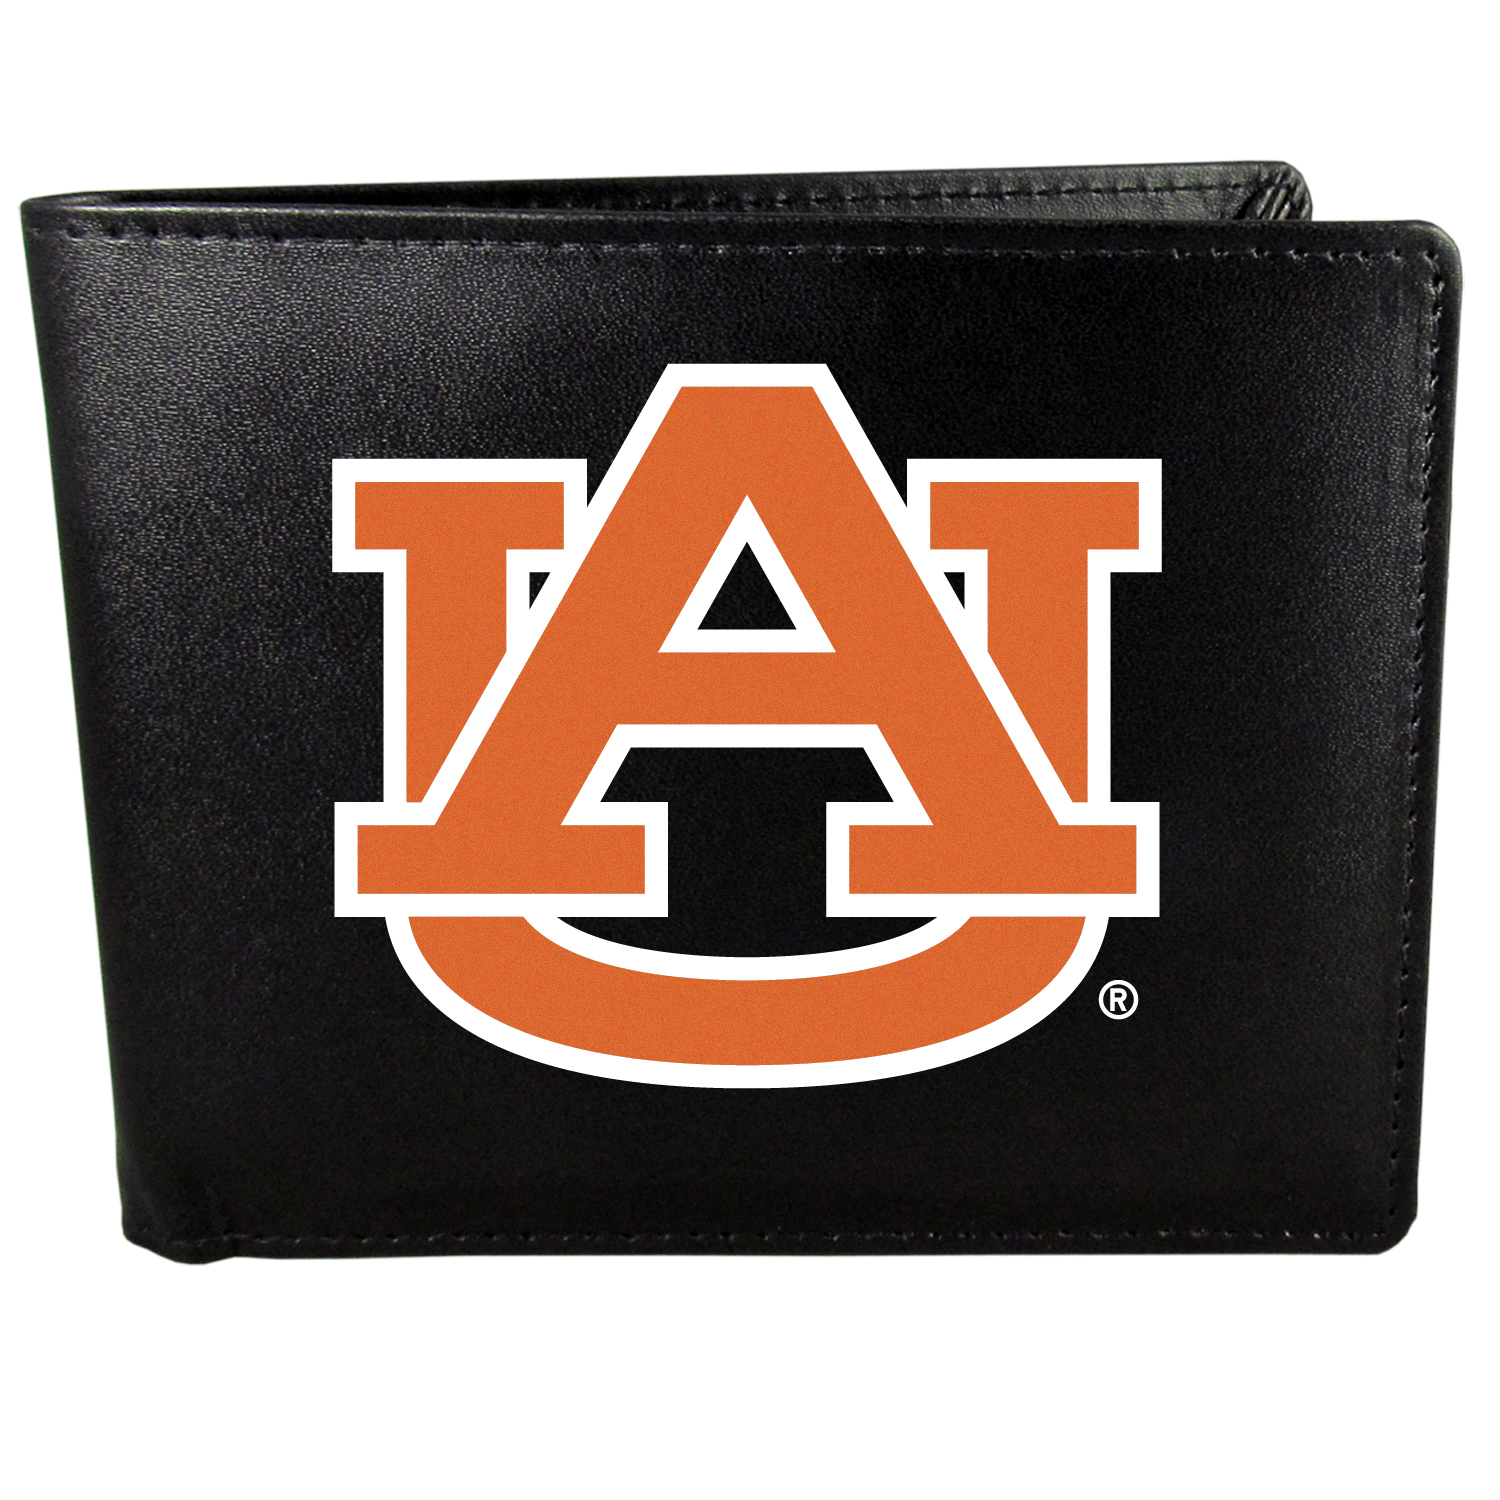 Auburn Tigers Bi-fold Wallet Large Logo - Sports fans do not have to sacrifice style with this classic bi-fold wallet that sports the Auburn Tigers?extra large logo. This men's fashion accessory has a leather grain look and expert craftmanship for a quality wallet at a great price. The wallet features inner credit card slots, windowed ID slot and a large billfold pocket. The front of the wallet features a printed team logo.